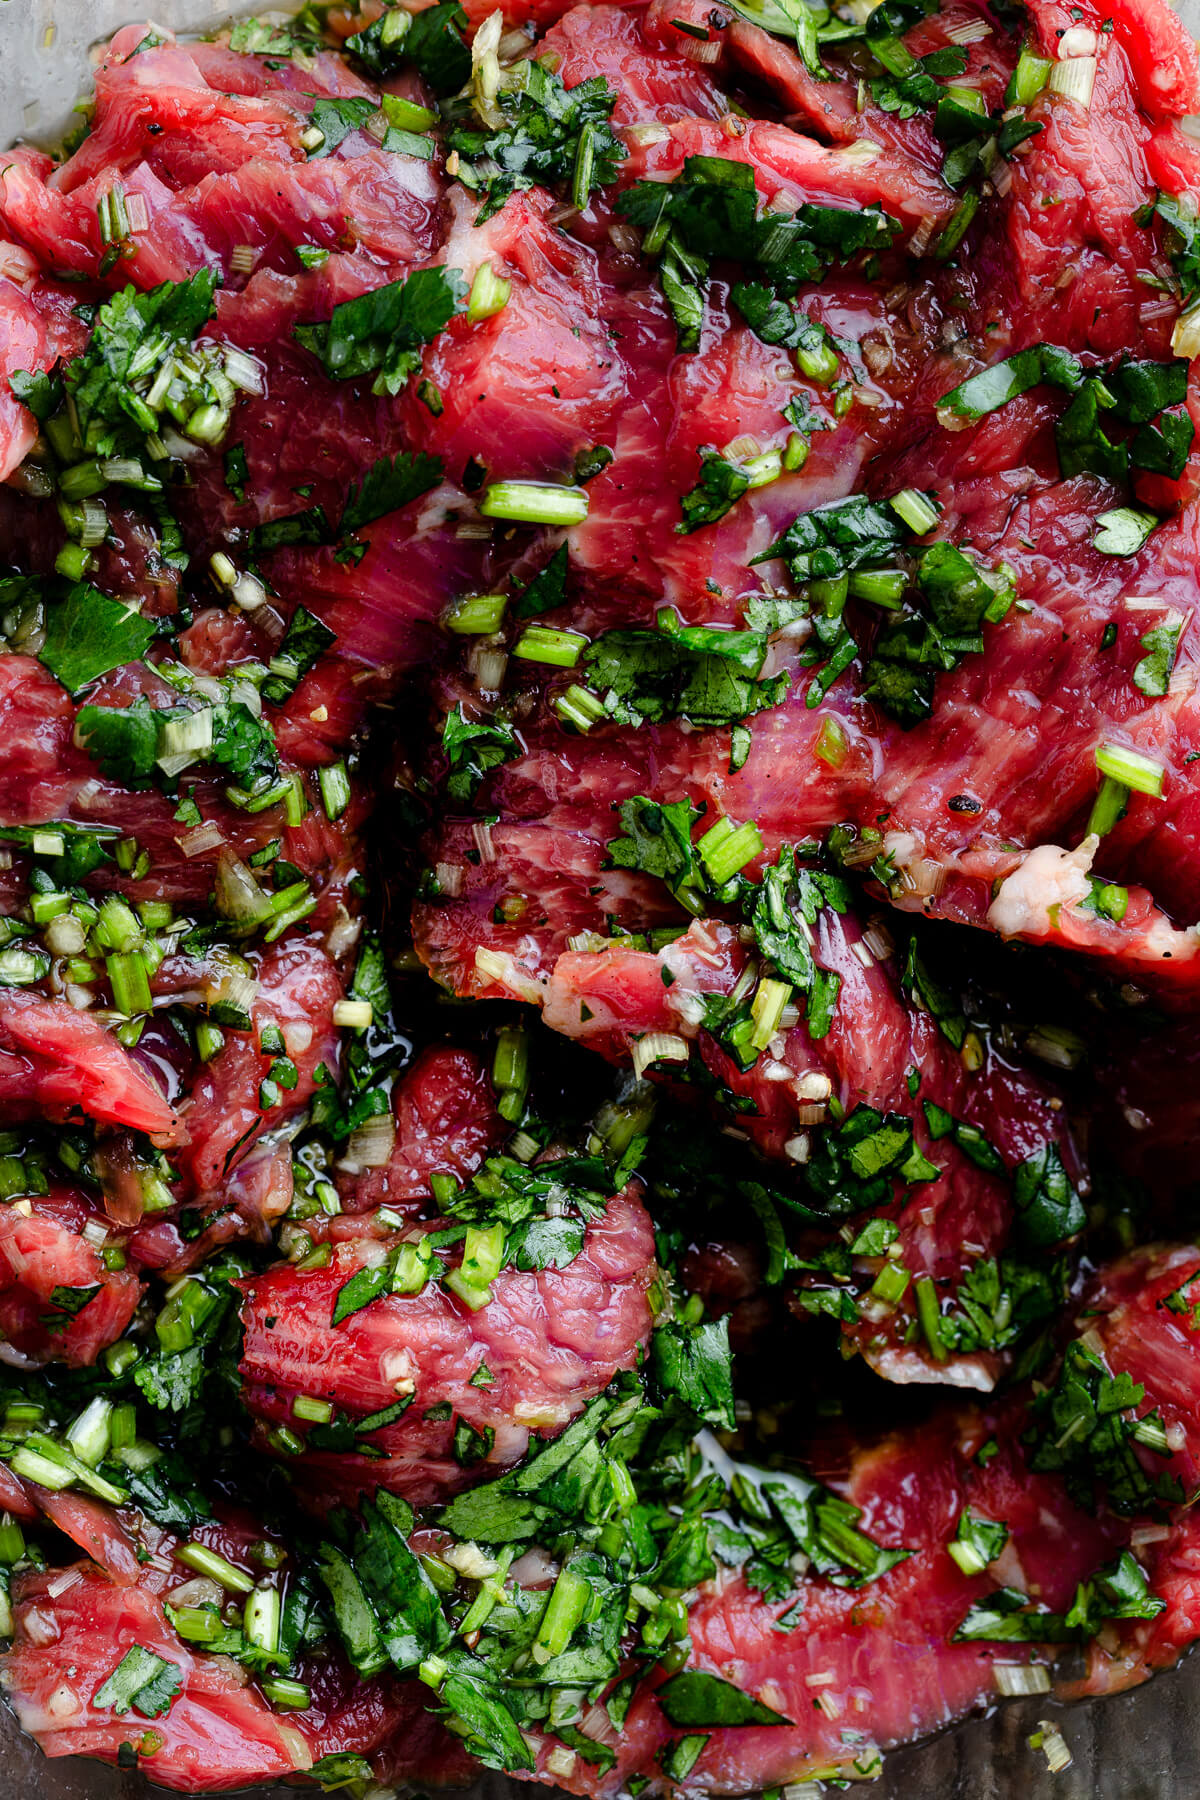 Slices of flank steak marinating in a marinade of lemongrass, cilantro, and fish sauce.